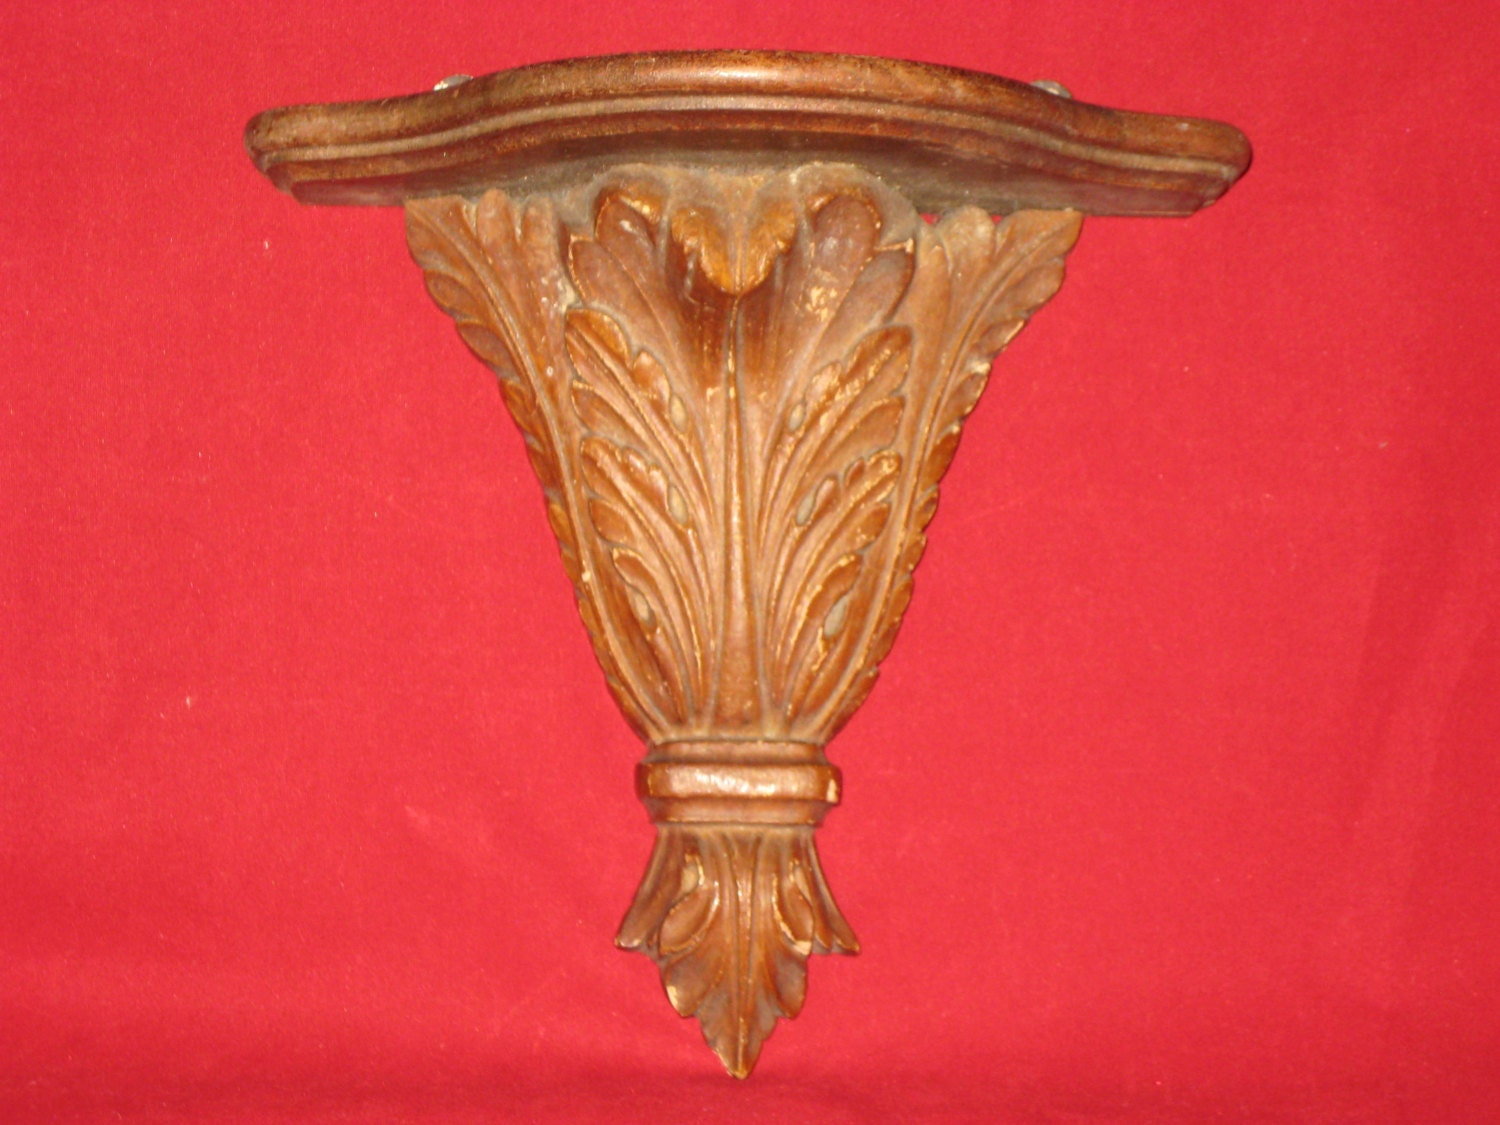 Vintage Carved Wall Sconce/Vintage Shelf/Pedestal Wall Sconce